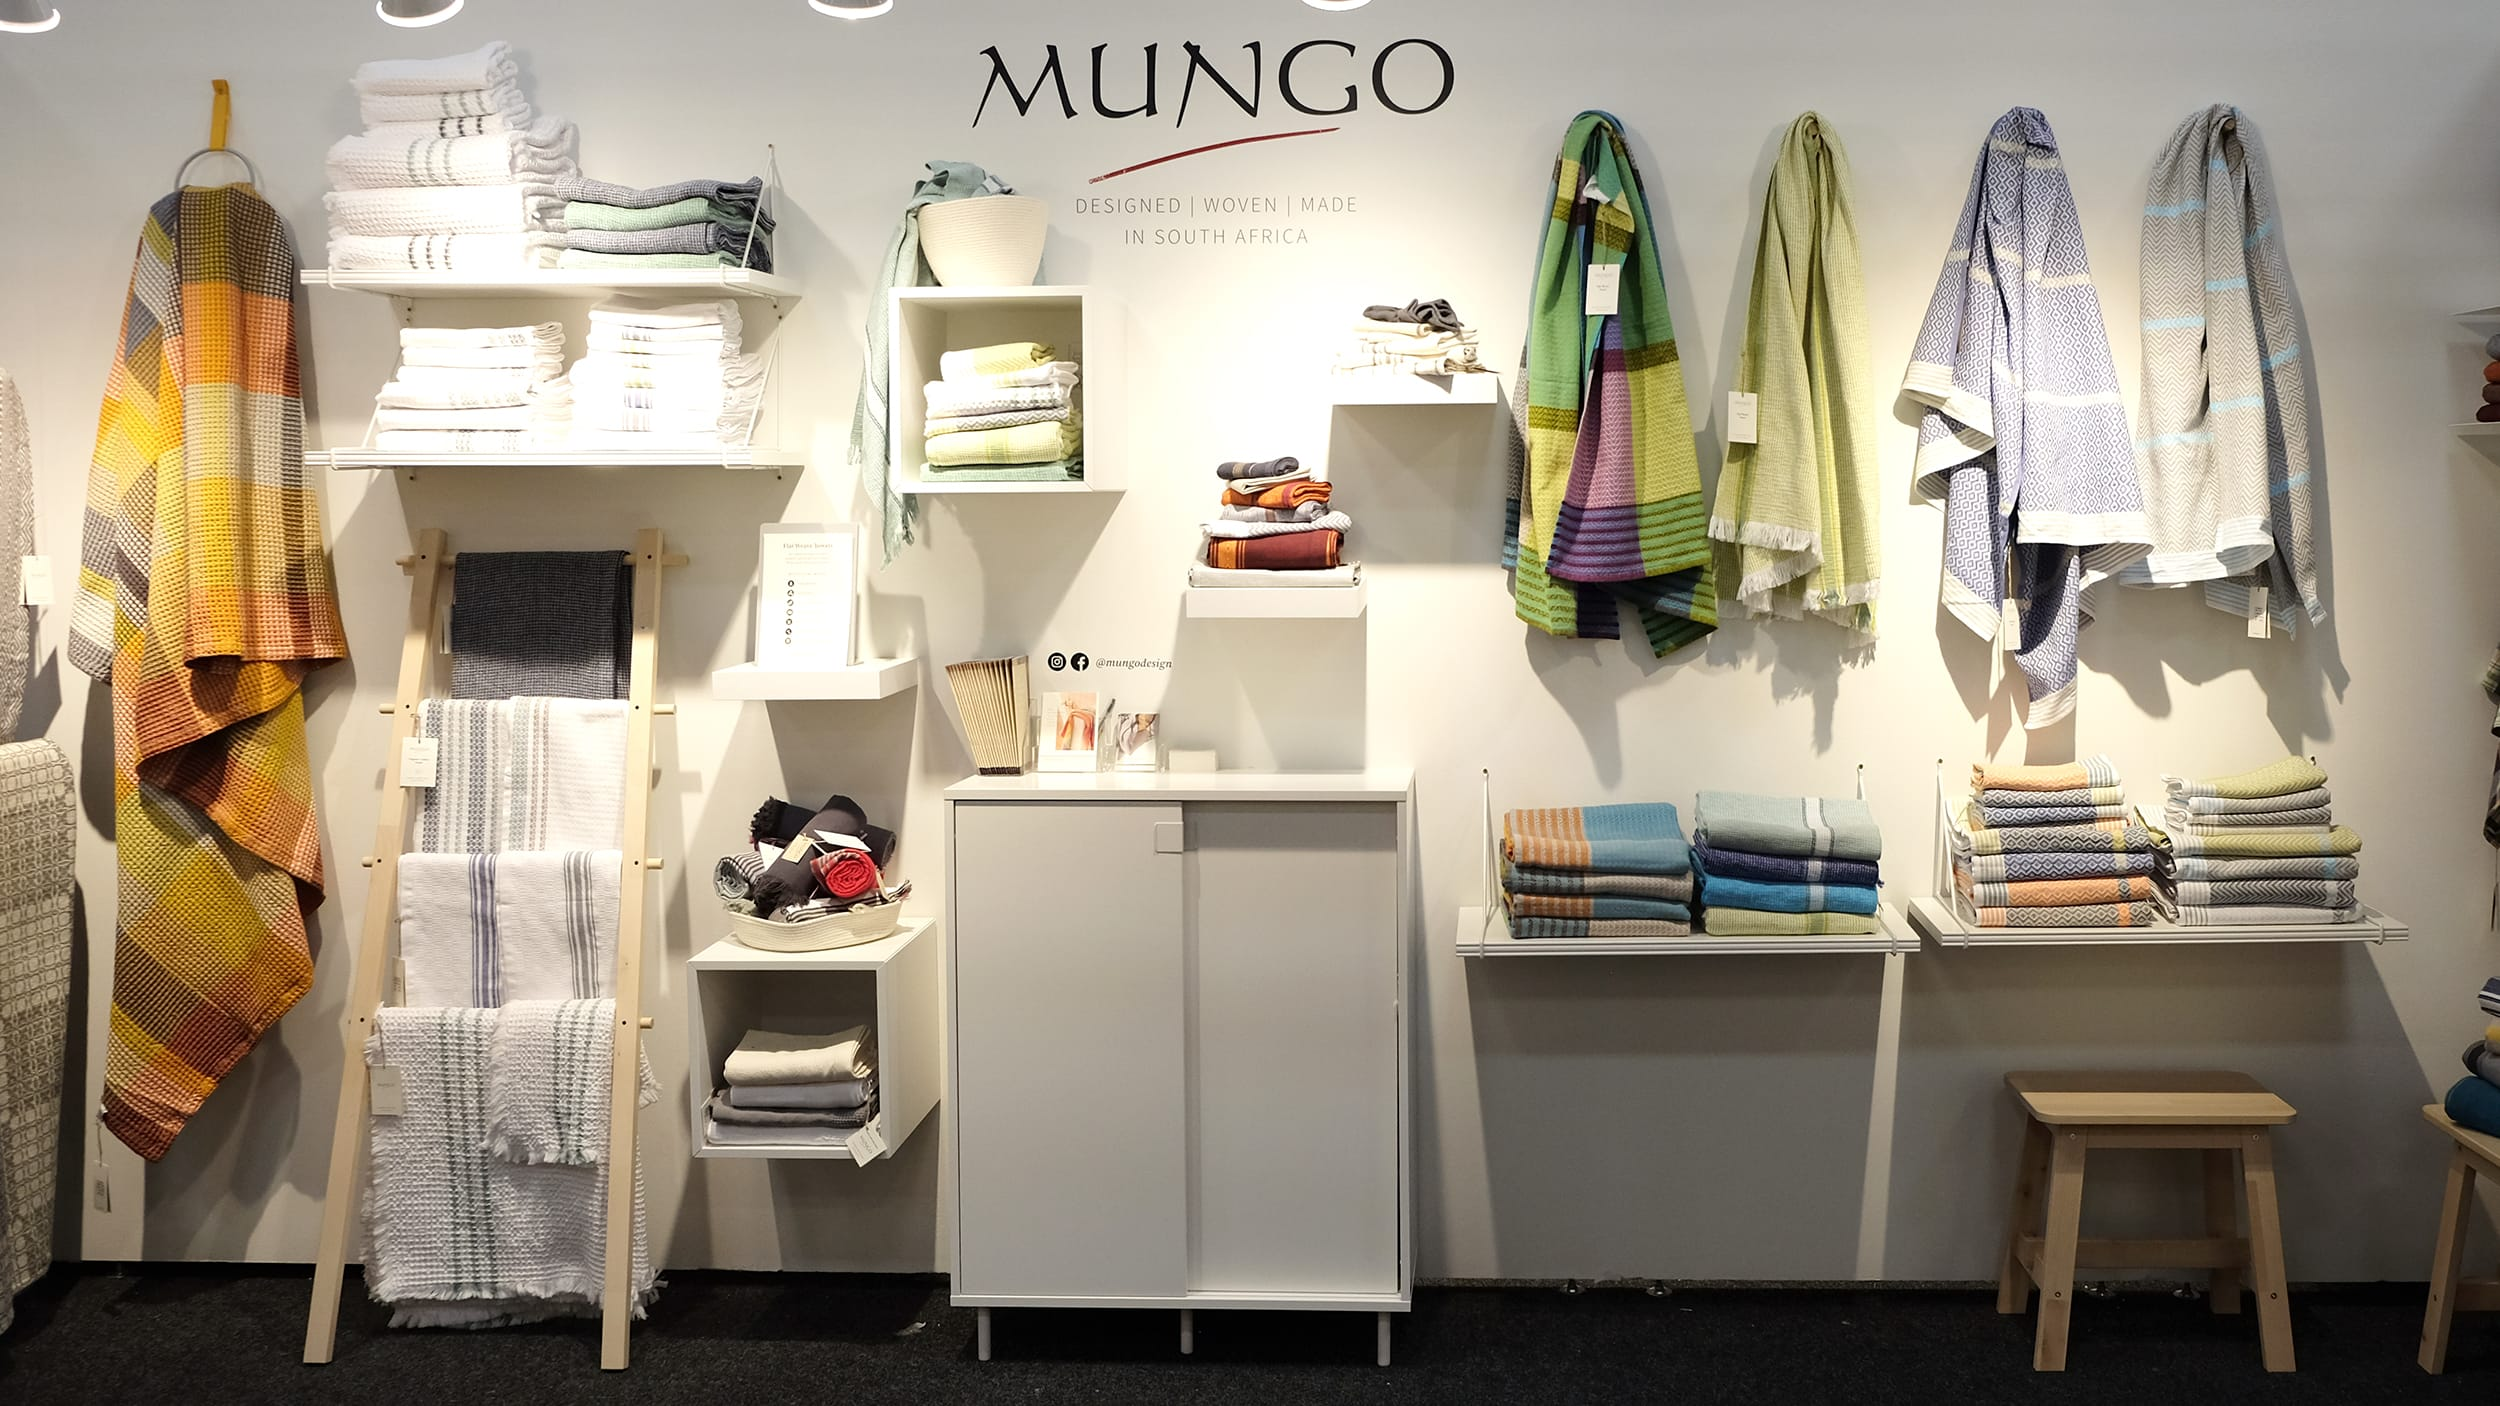 exhibitors stand Mungo home textiles New York's new trade show Shoppe Object